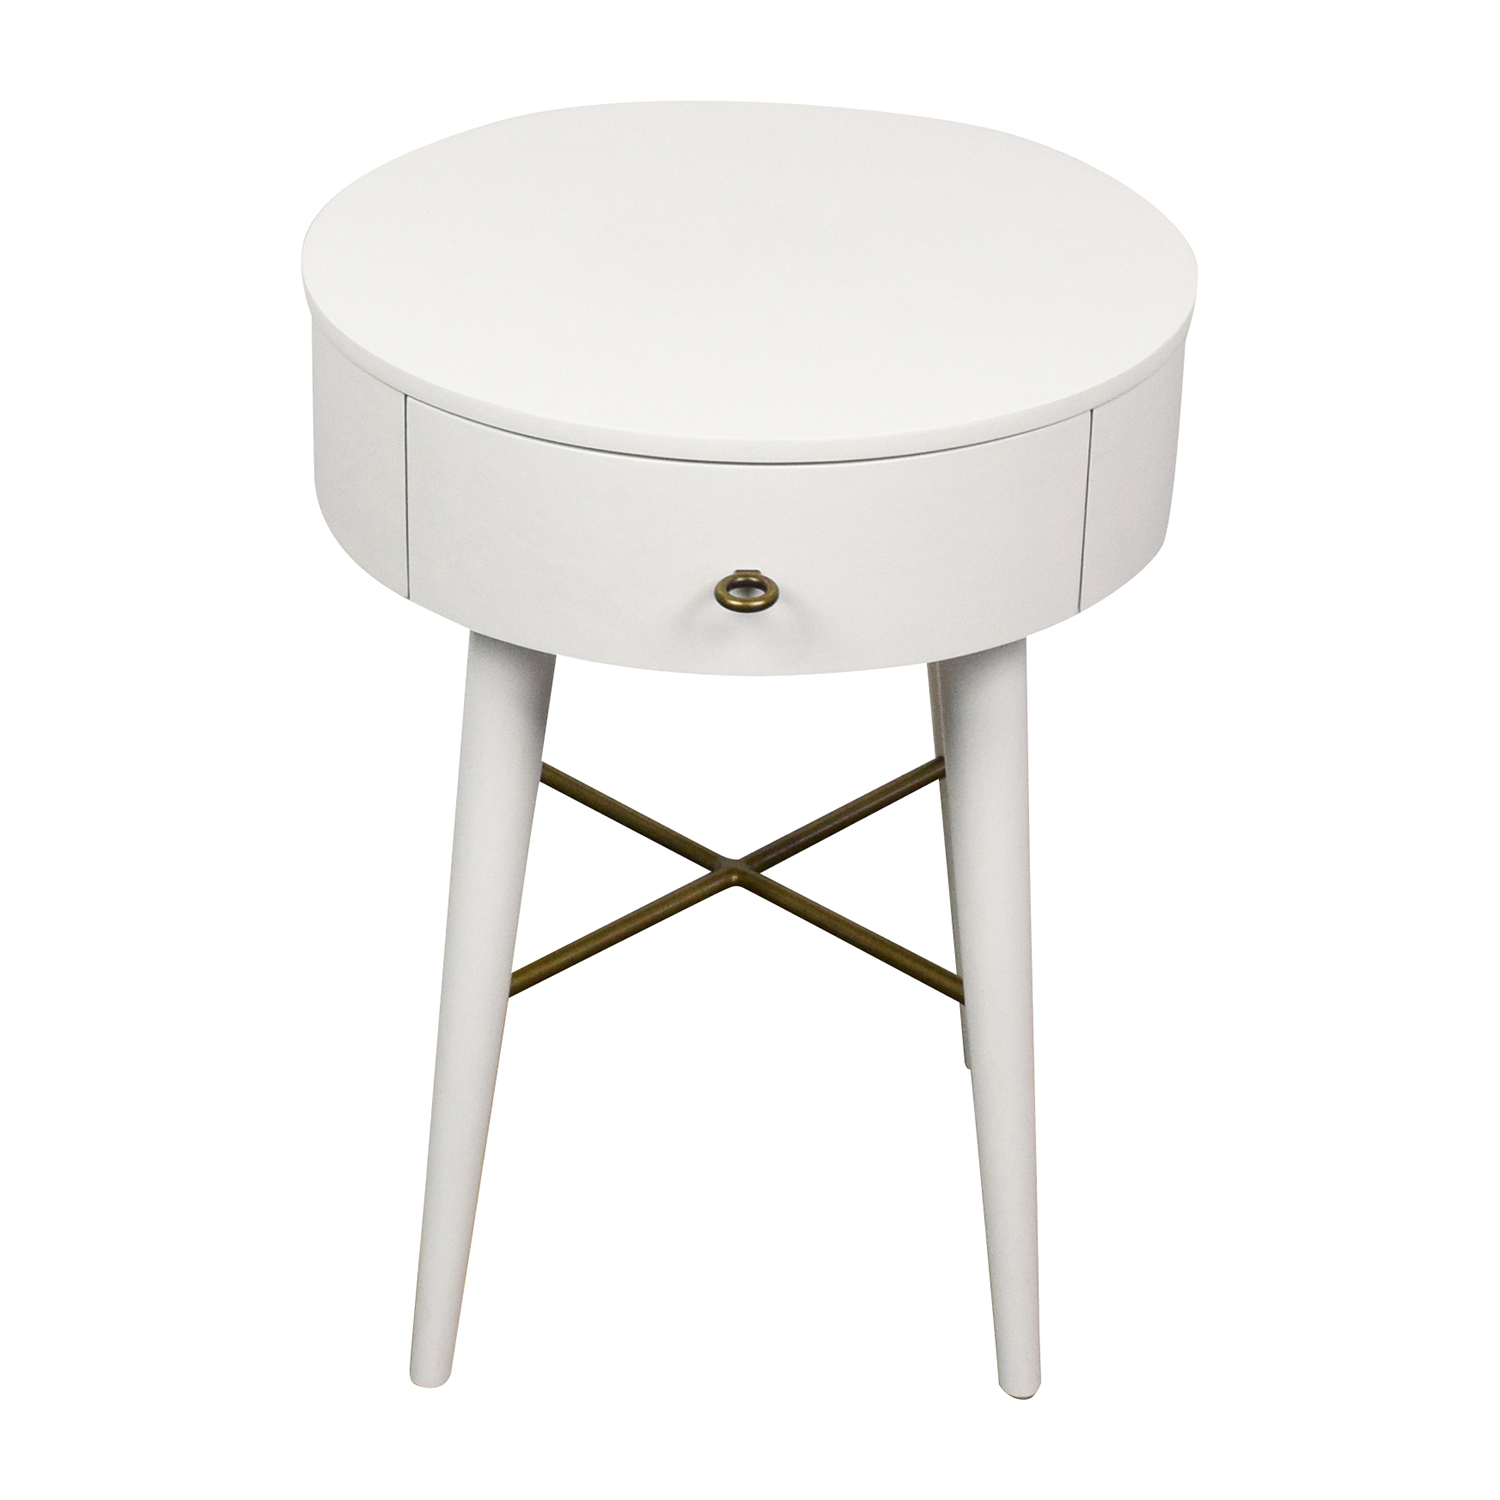 West Elm West Elm Penelope White Round Nightstand price